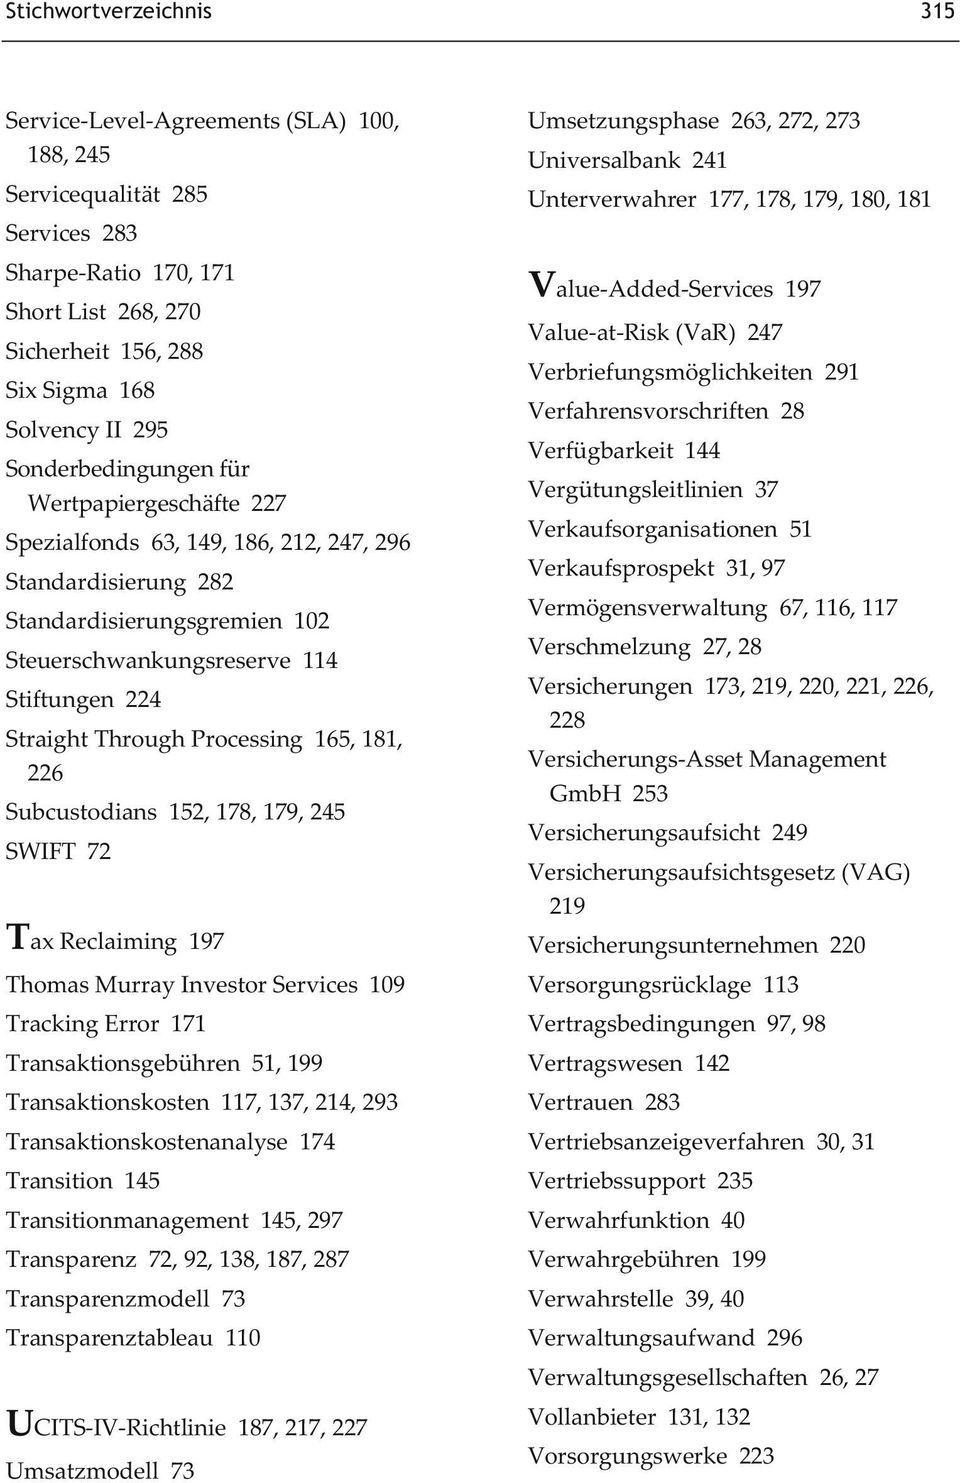 Processing 165, 181, 226 Subcustodians 152, 178, 179, 245 SWIFT 72 Tax Reclaiming 197 Thomas Murray Investor Services 109 Tracking Error 171 Transaktionsgebühren 51, 199 Transaktionskosten 117, 137,